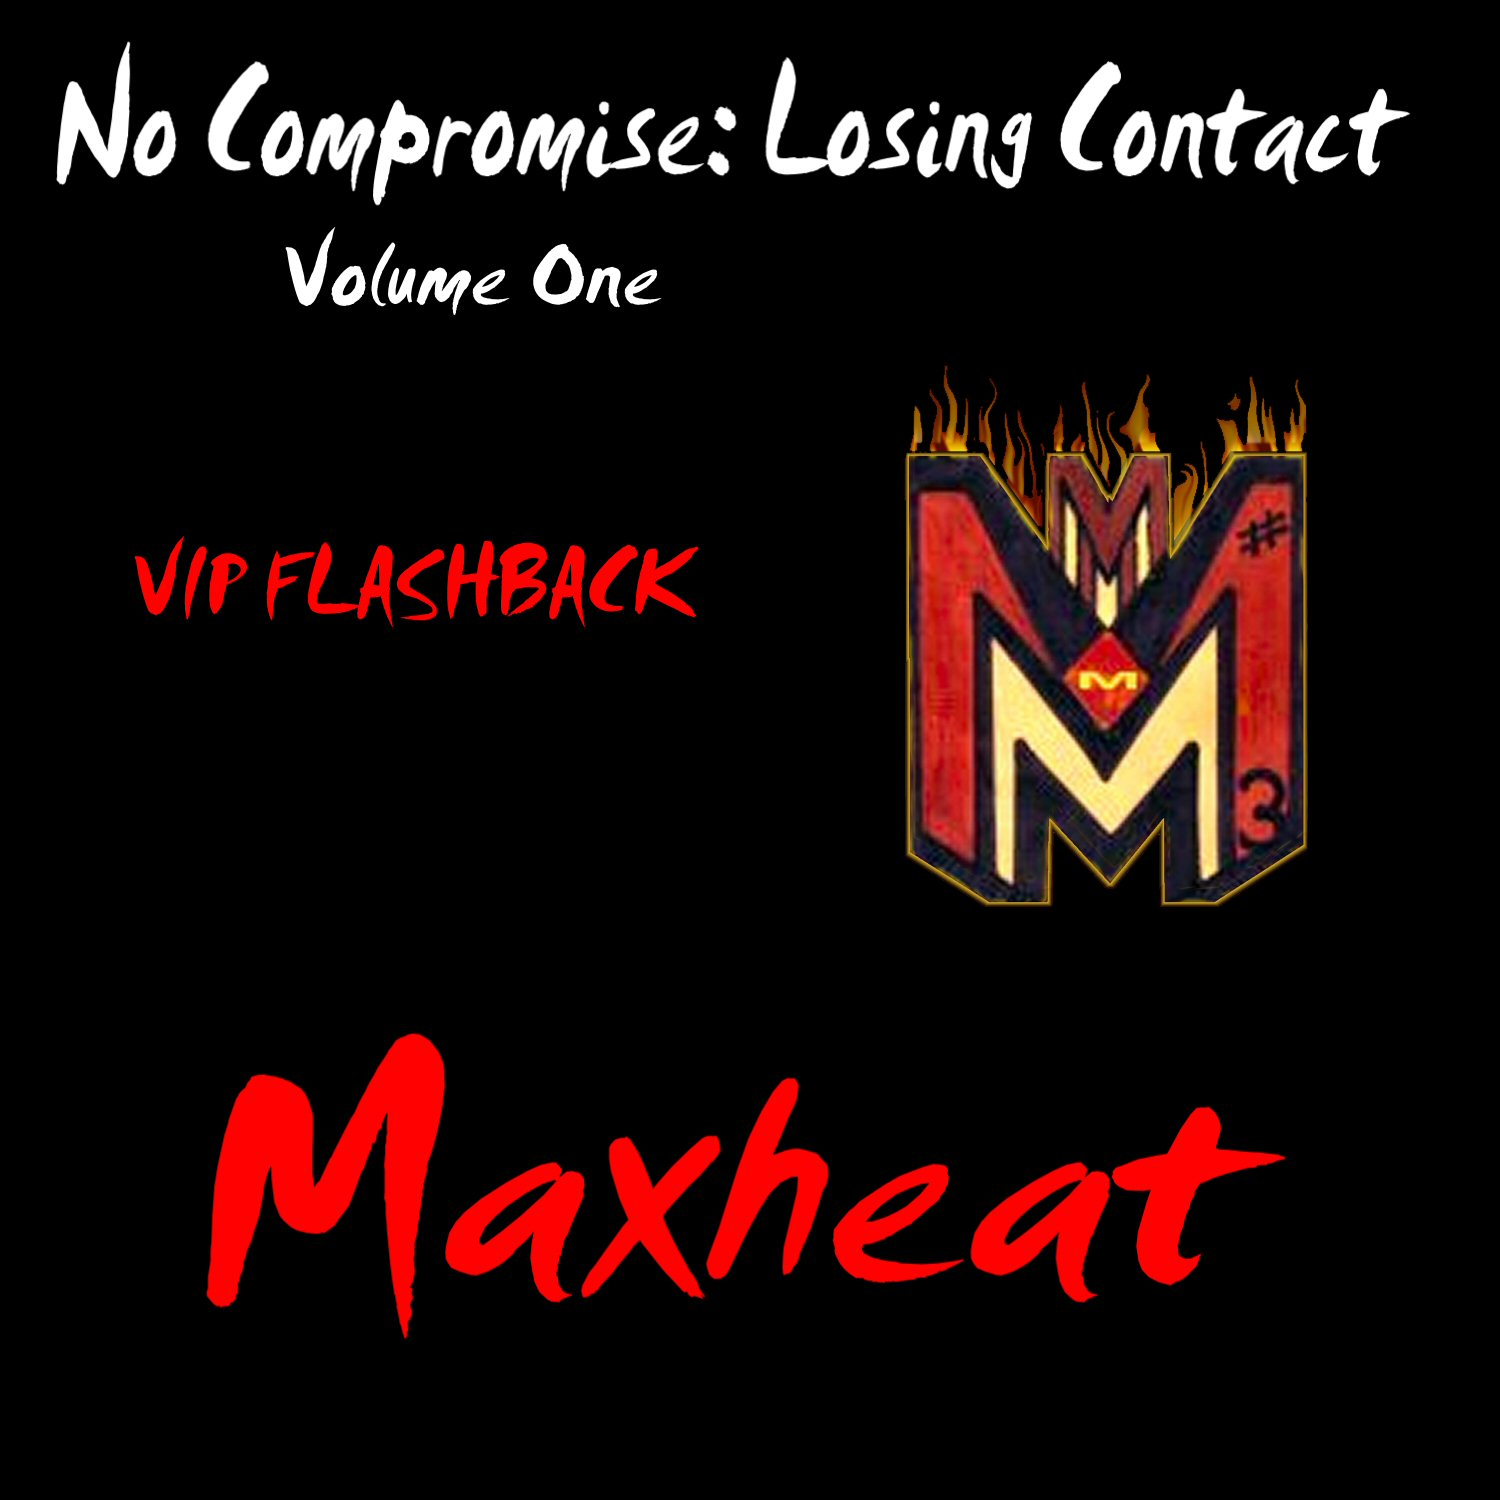 NO Compromise volume one